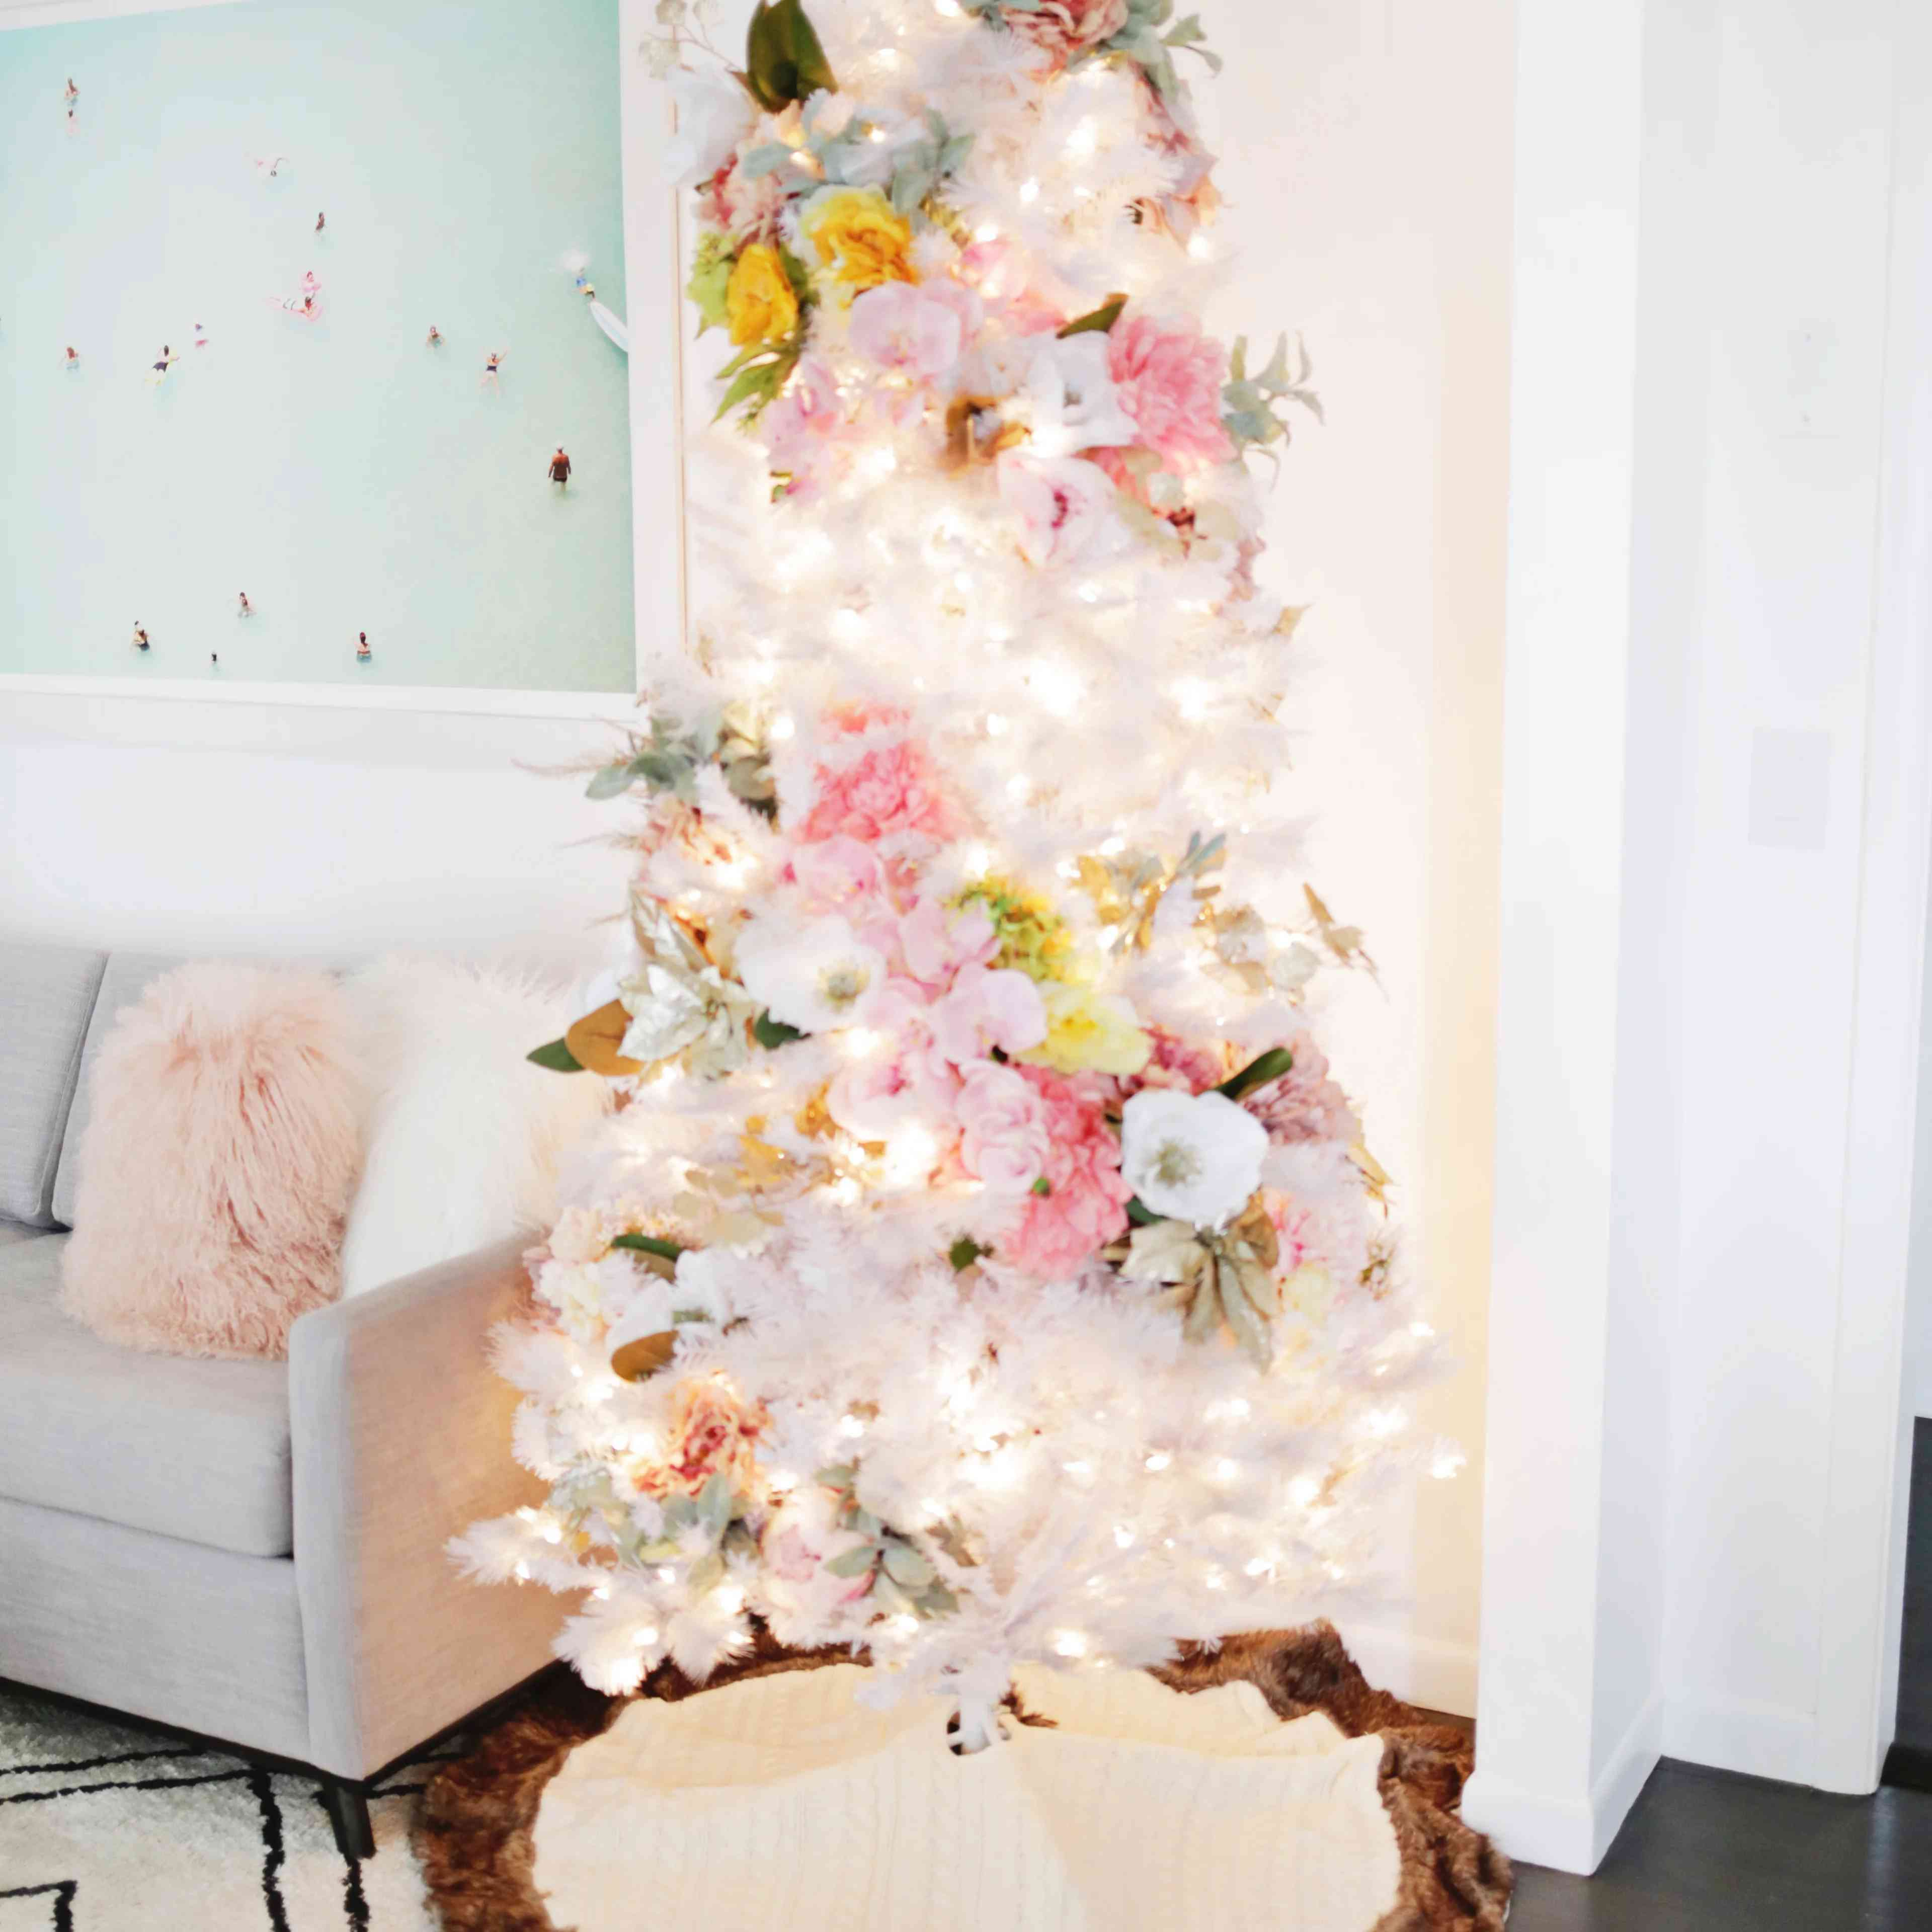 A white Christmas tree decorated with flowers.